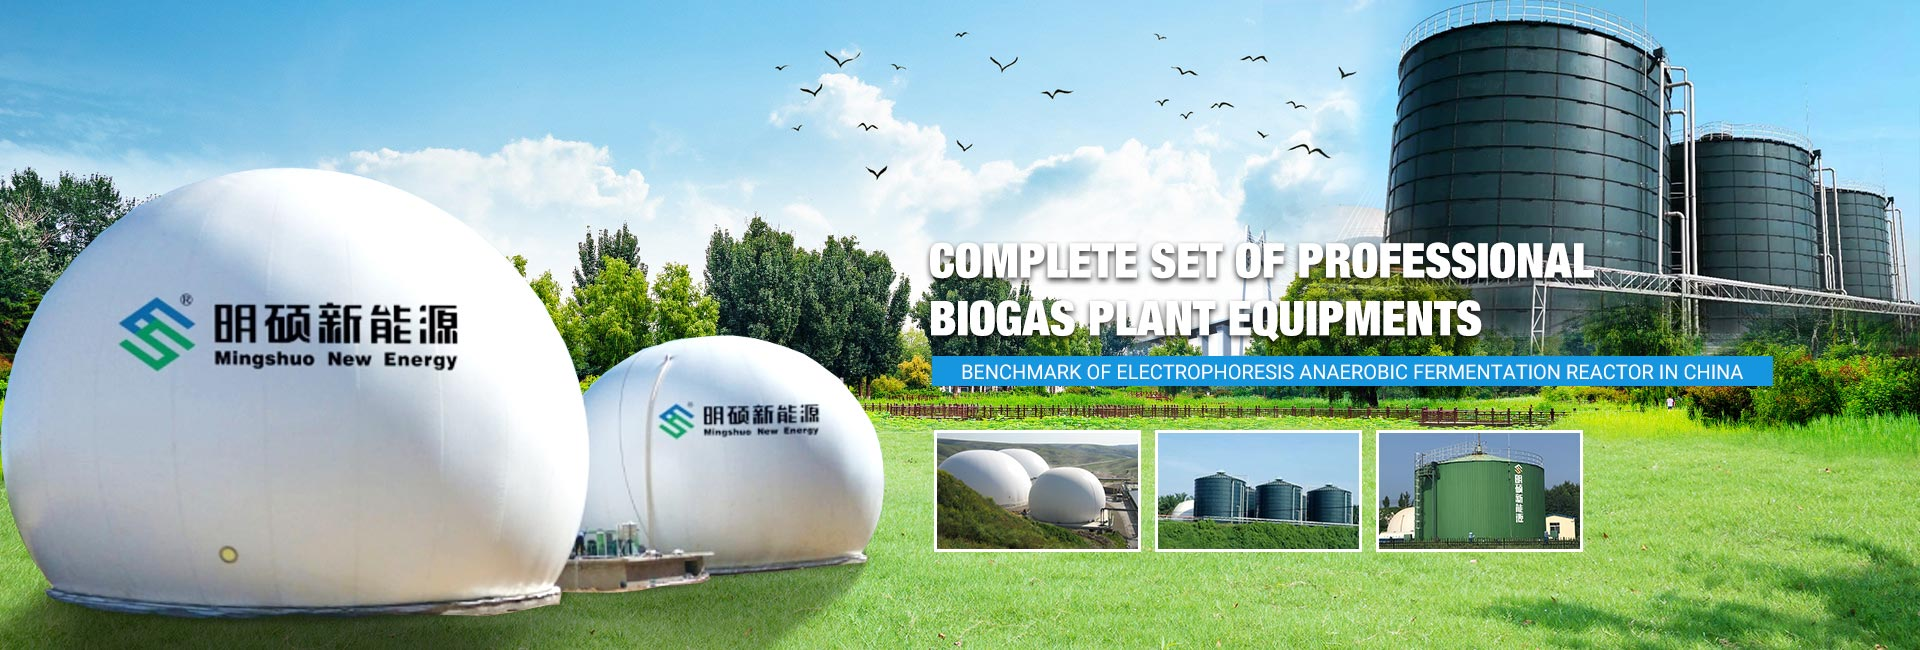 Complete Set of Professional Biogas Plant Equipments